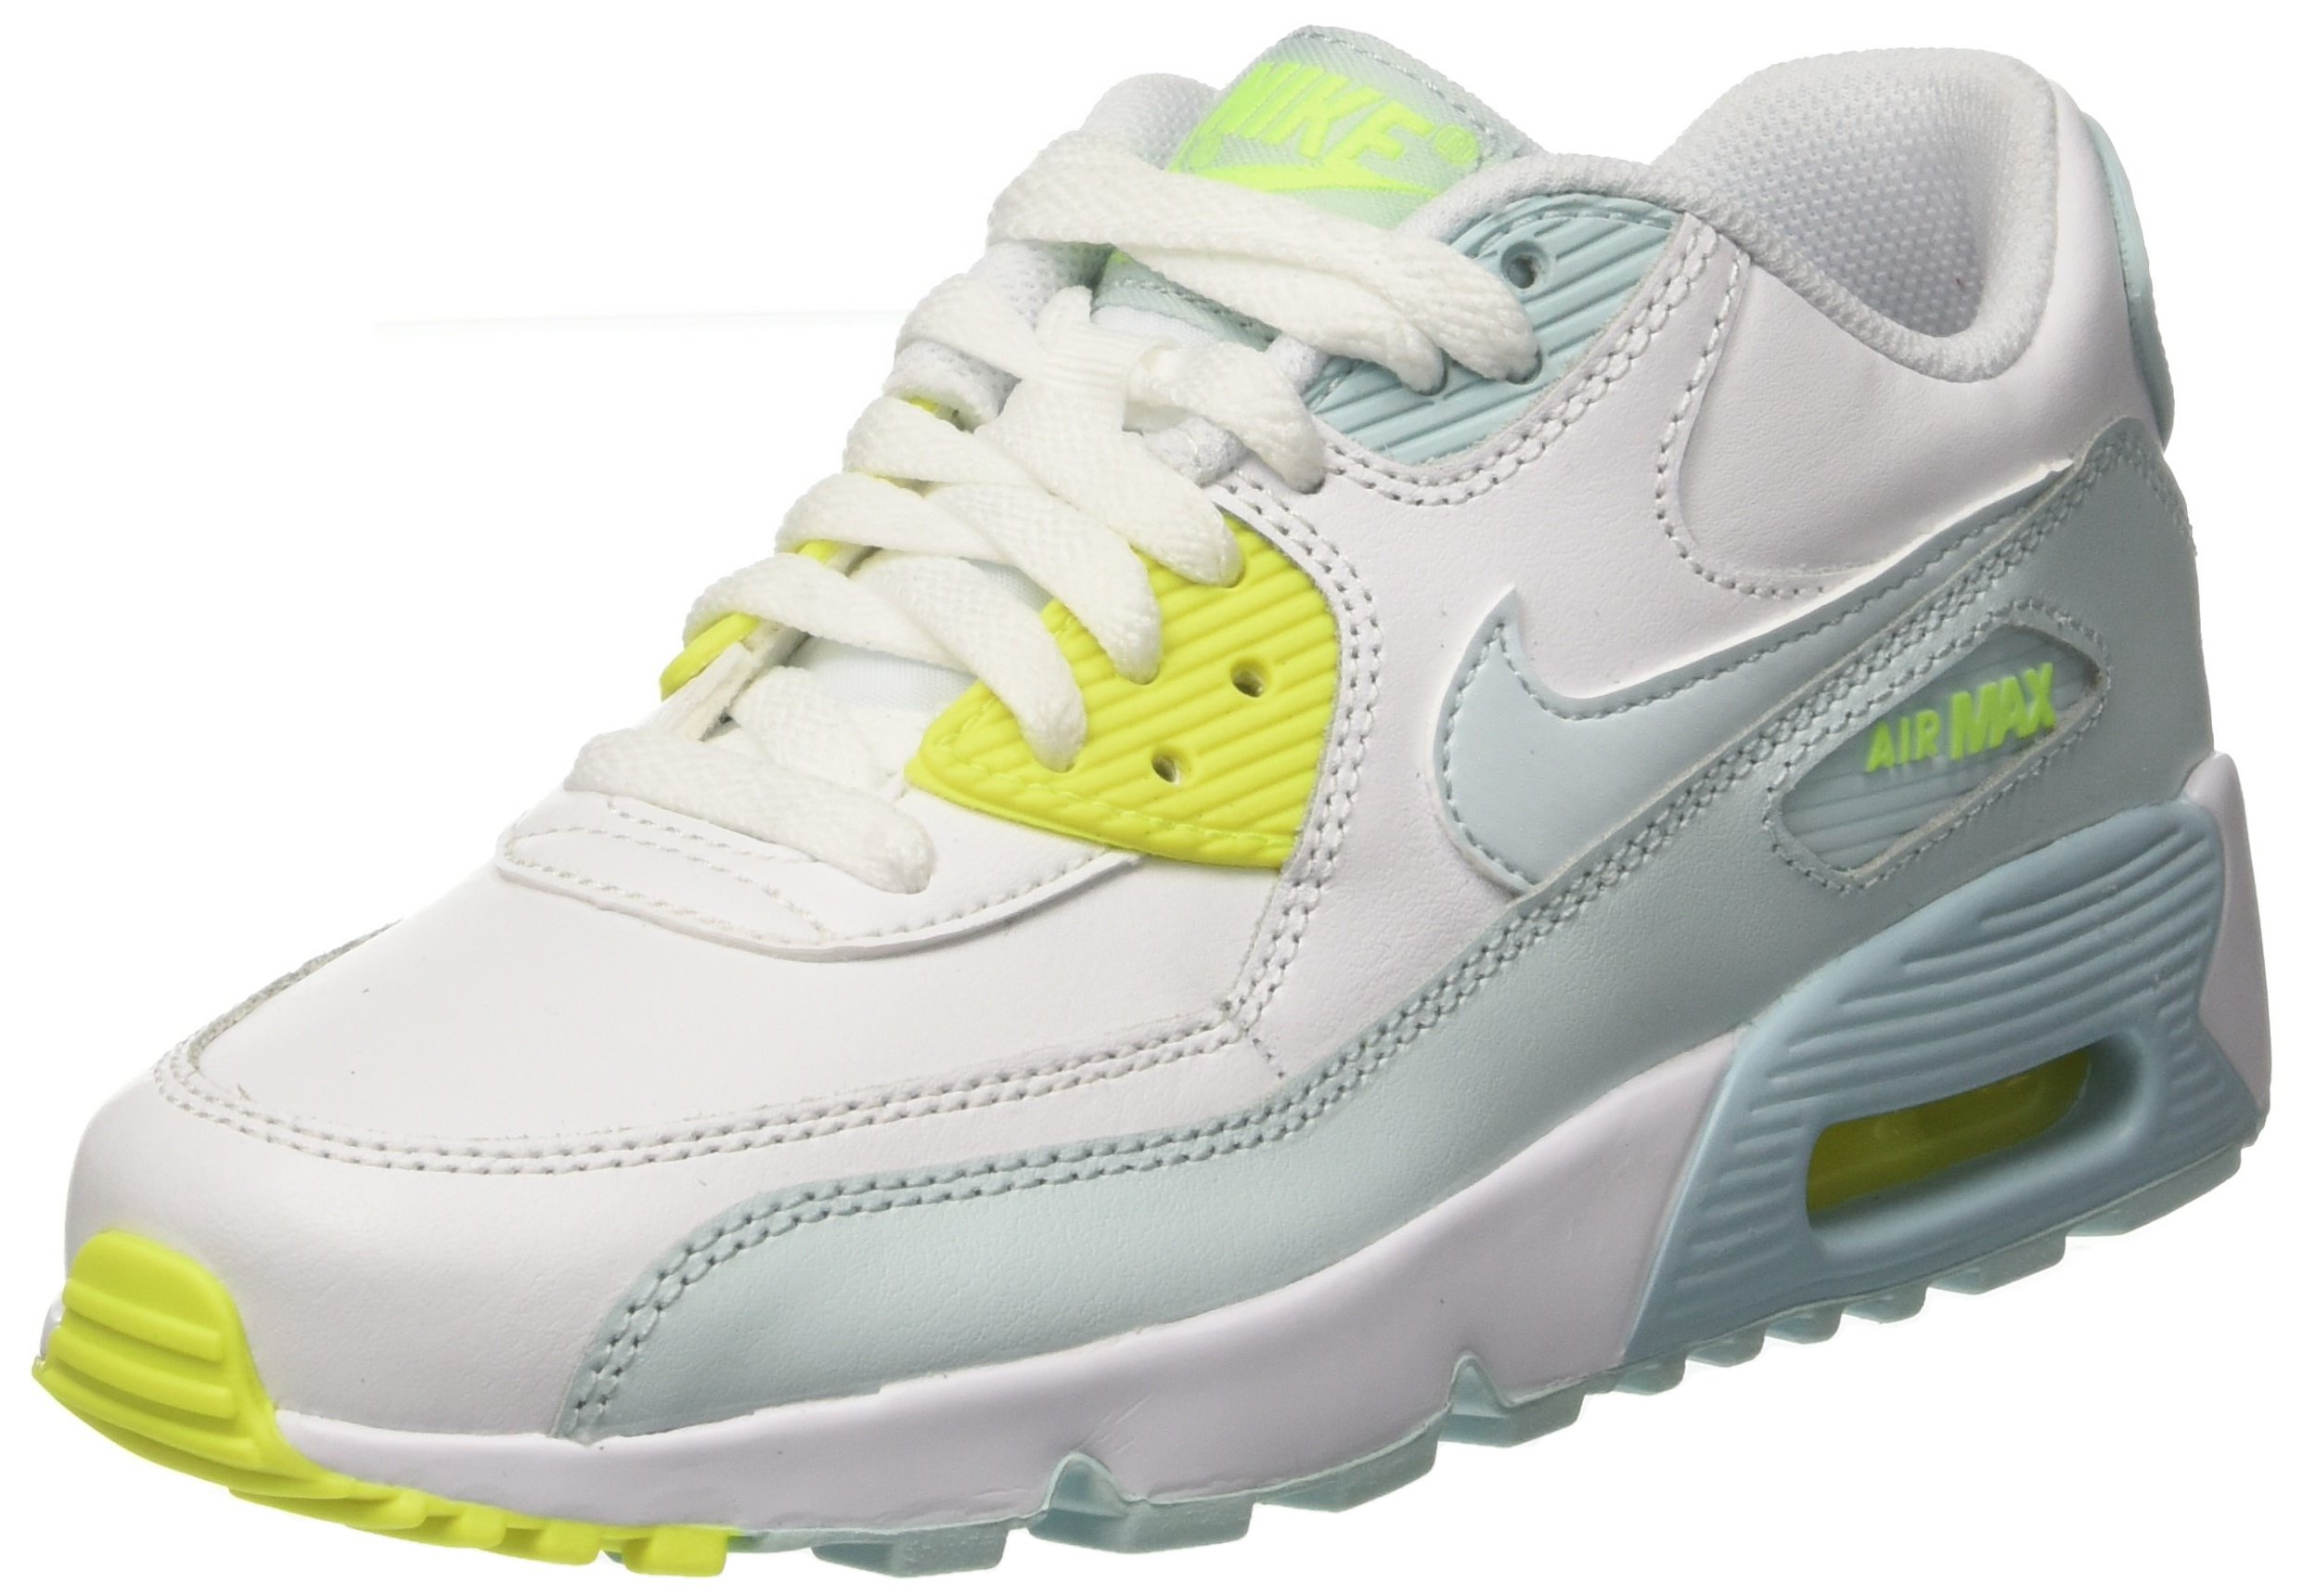 Nike Youth Air Max 90 LTR Running Shoes